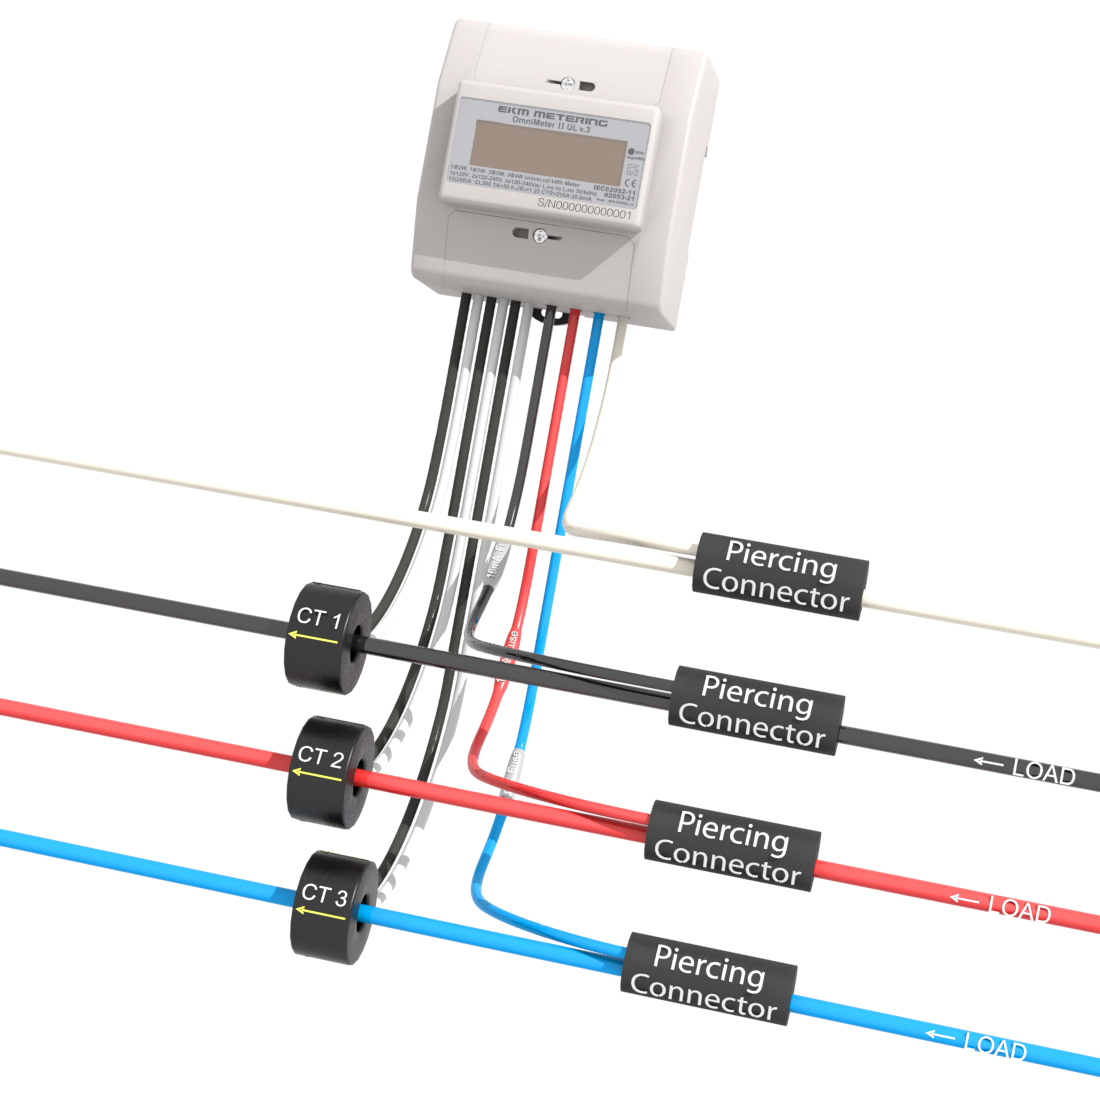 WRG-7447] 4 Wire 240v Plug Wiring Diagram on